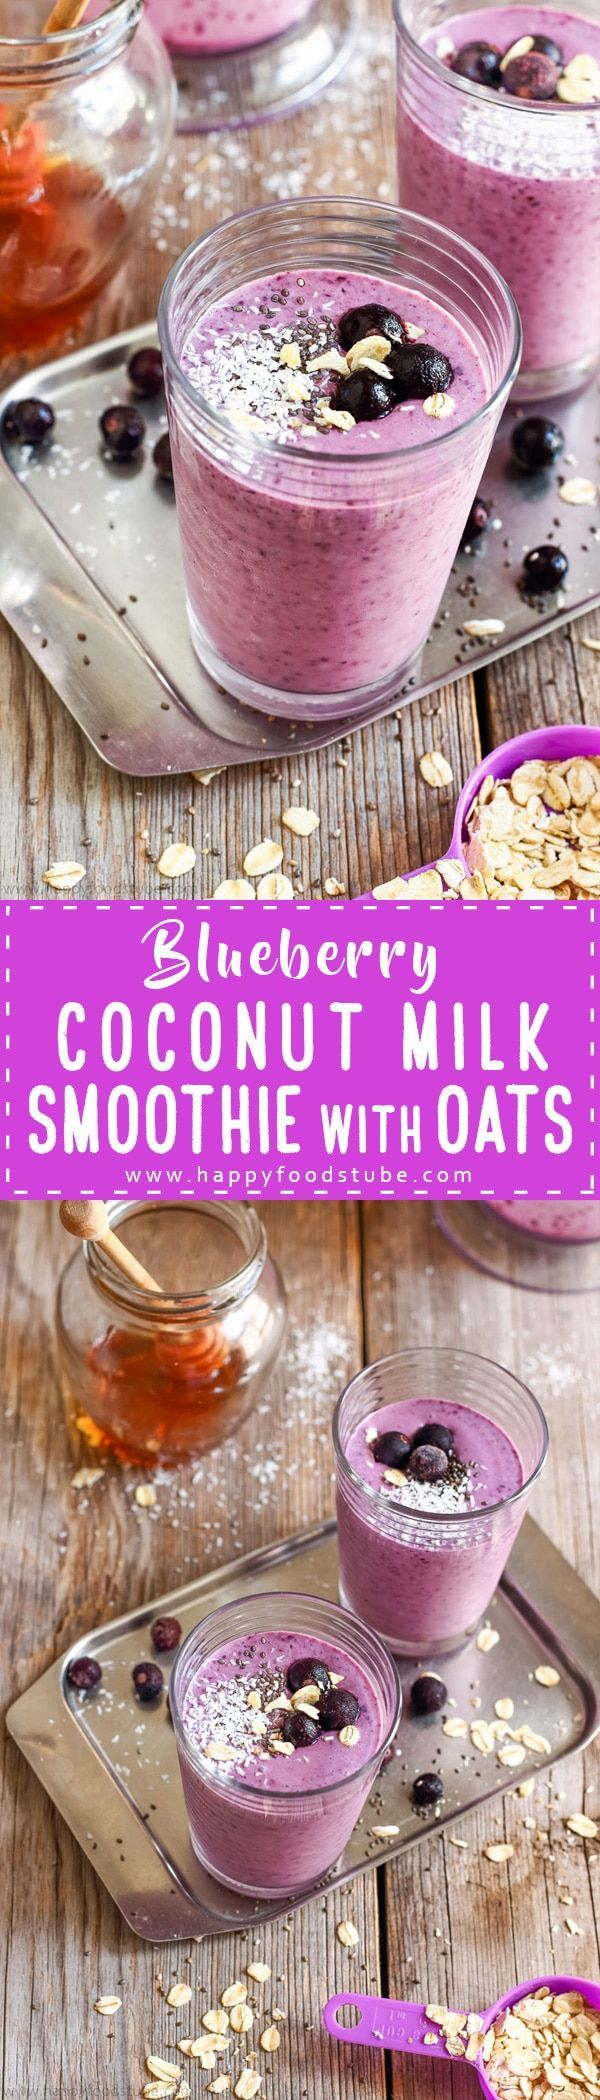 Homemade Blueberry Coconut Milk Smoothie is delicious breakfast drink and packed with antioxidants, protein, fiber, minerals and vitamins. Ready to go in just 5 minutes via /happyfoodstube/